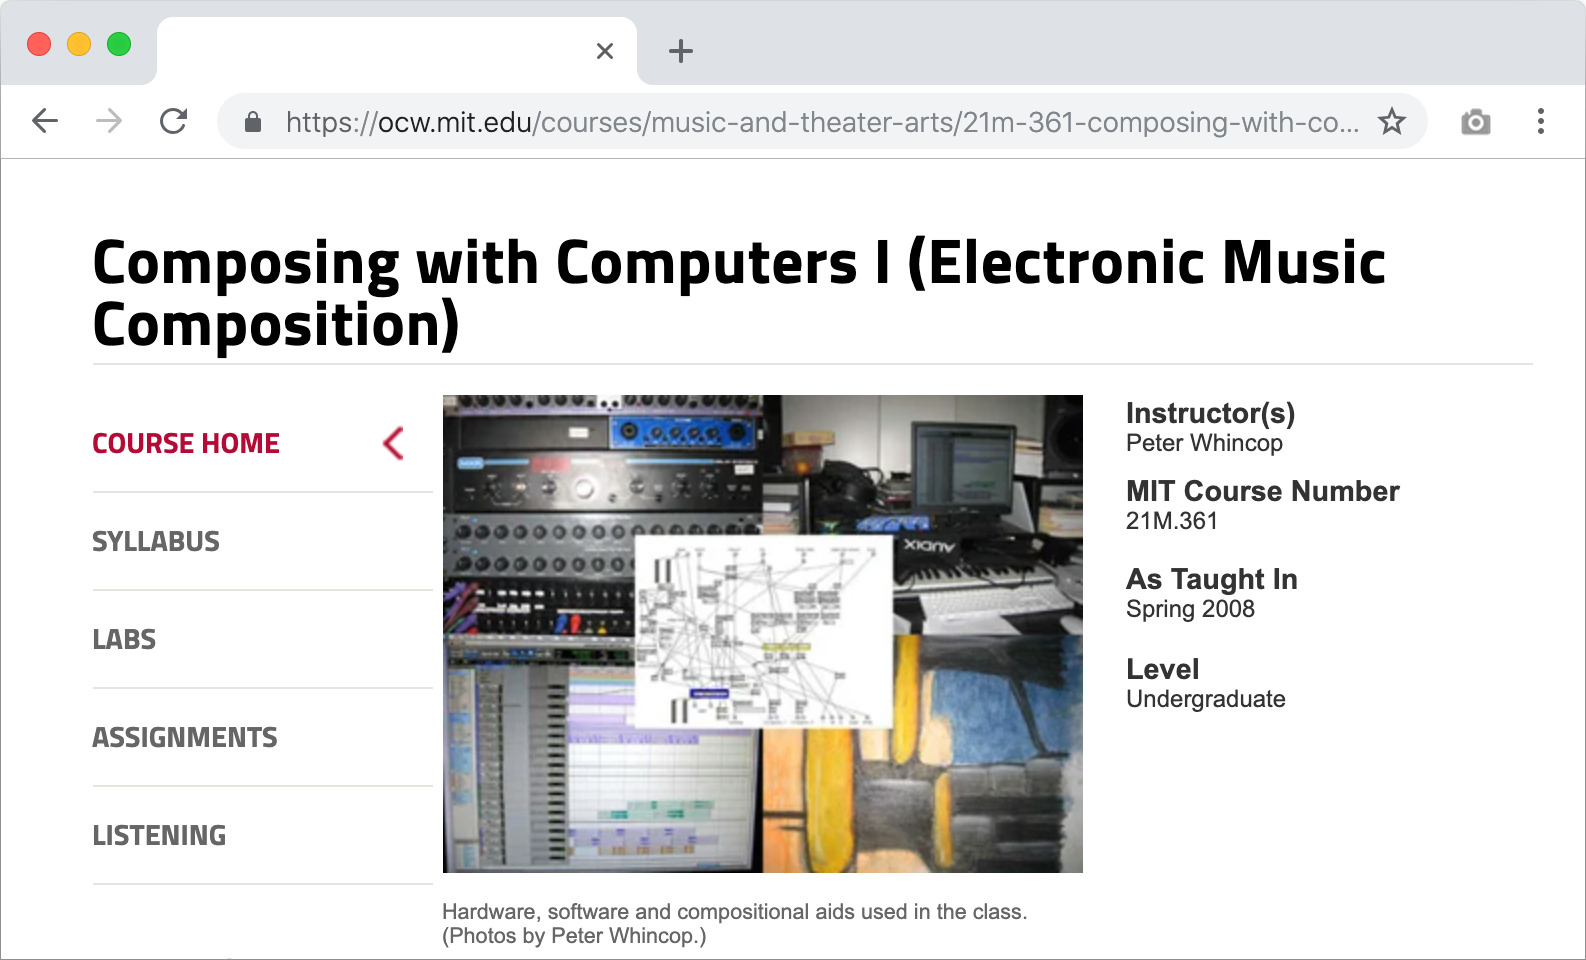 composing with computers: 21m.361